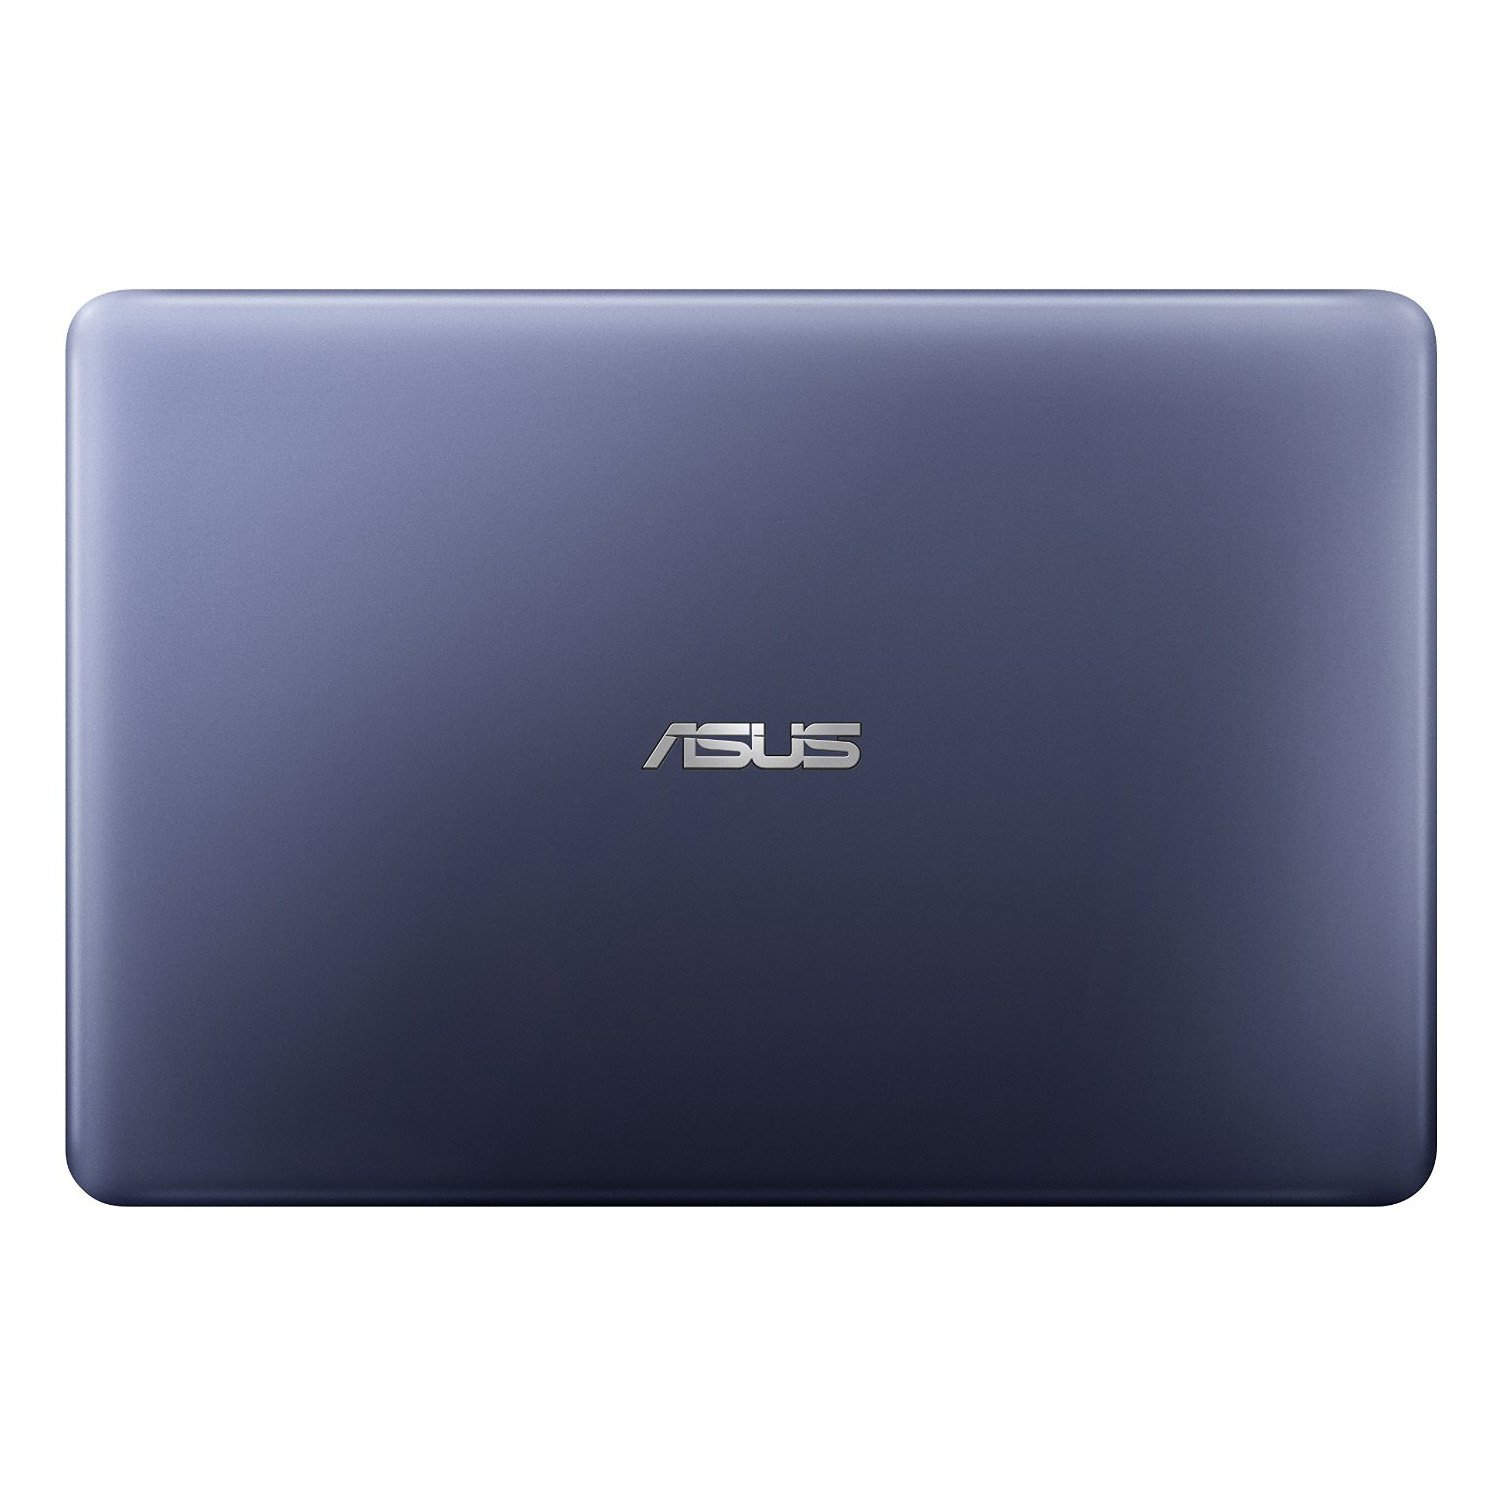 ASUS U82U NOTEBOOK SECURE DELETE DRIVERS PC